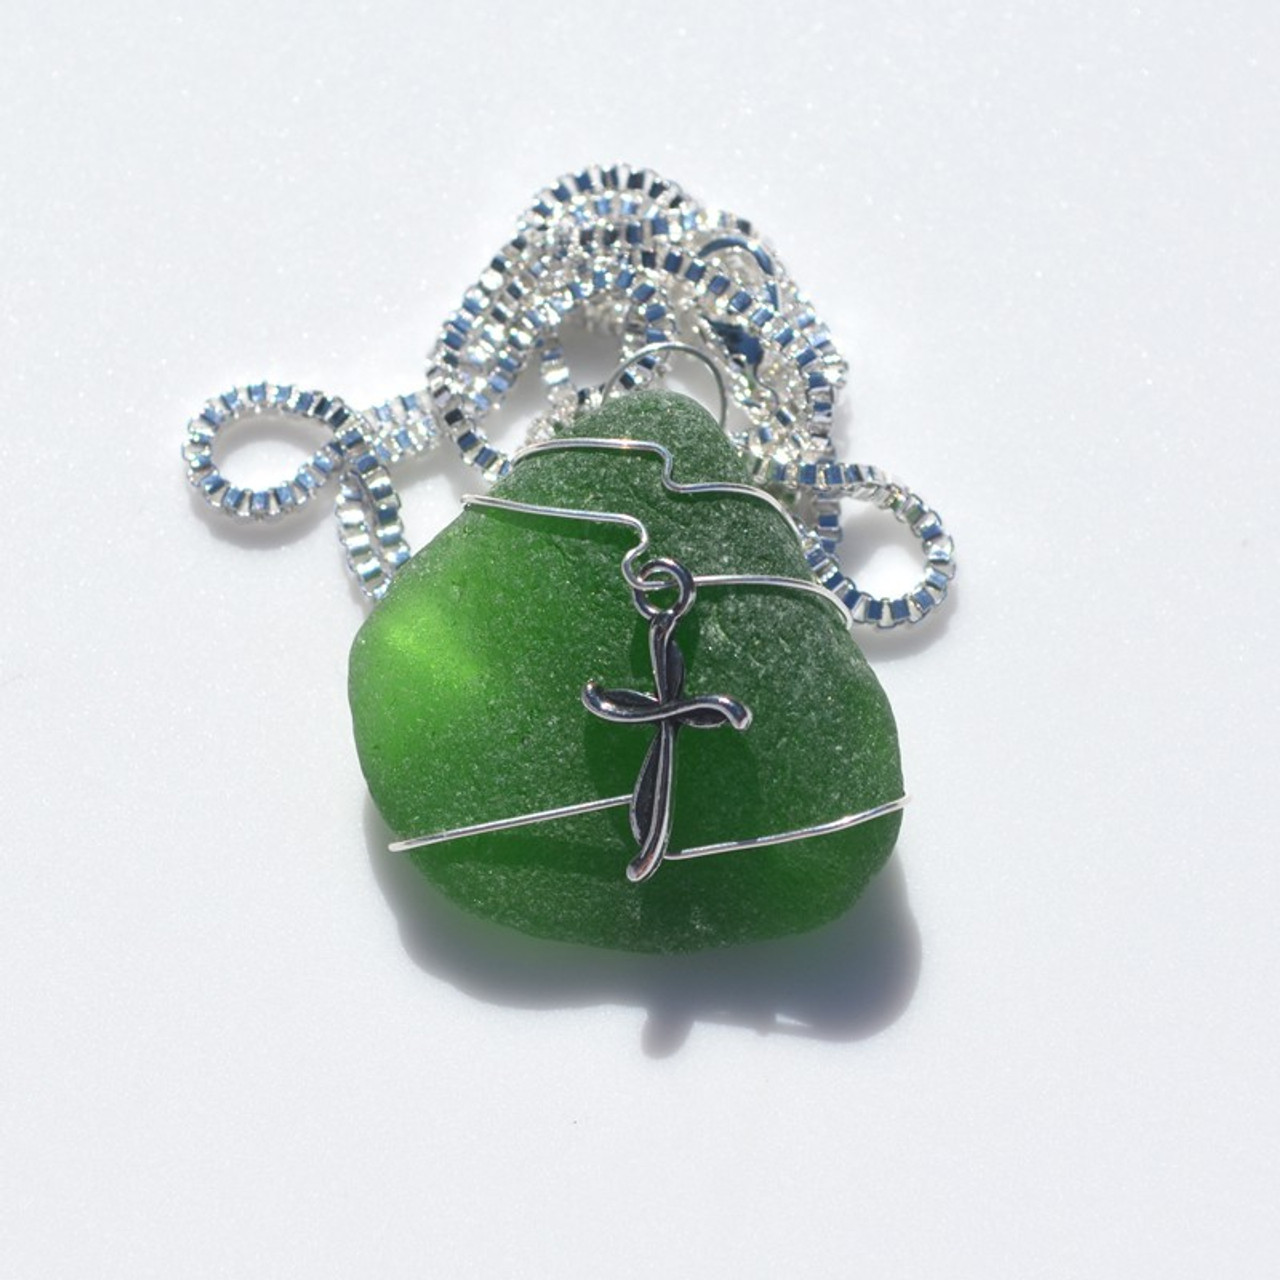 Christian Cross Pendant and Necklace